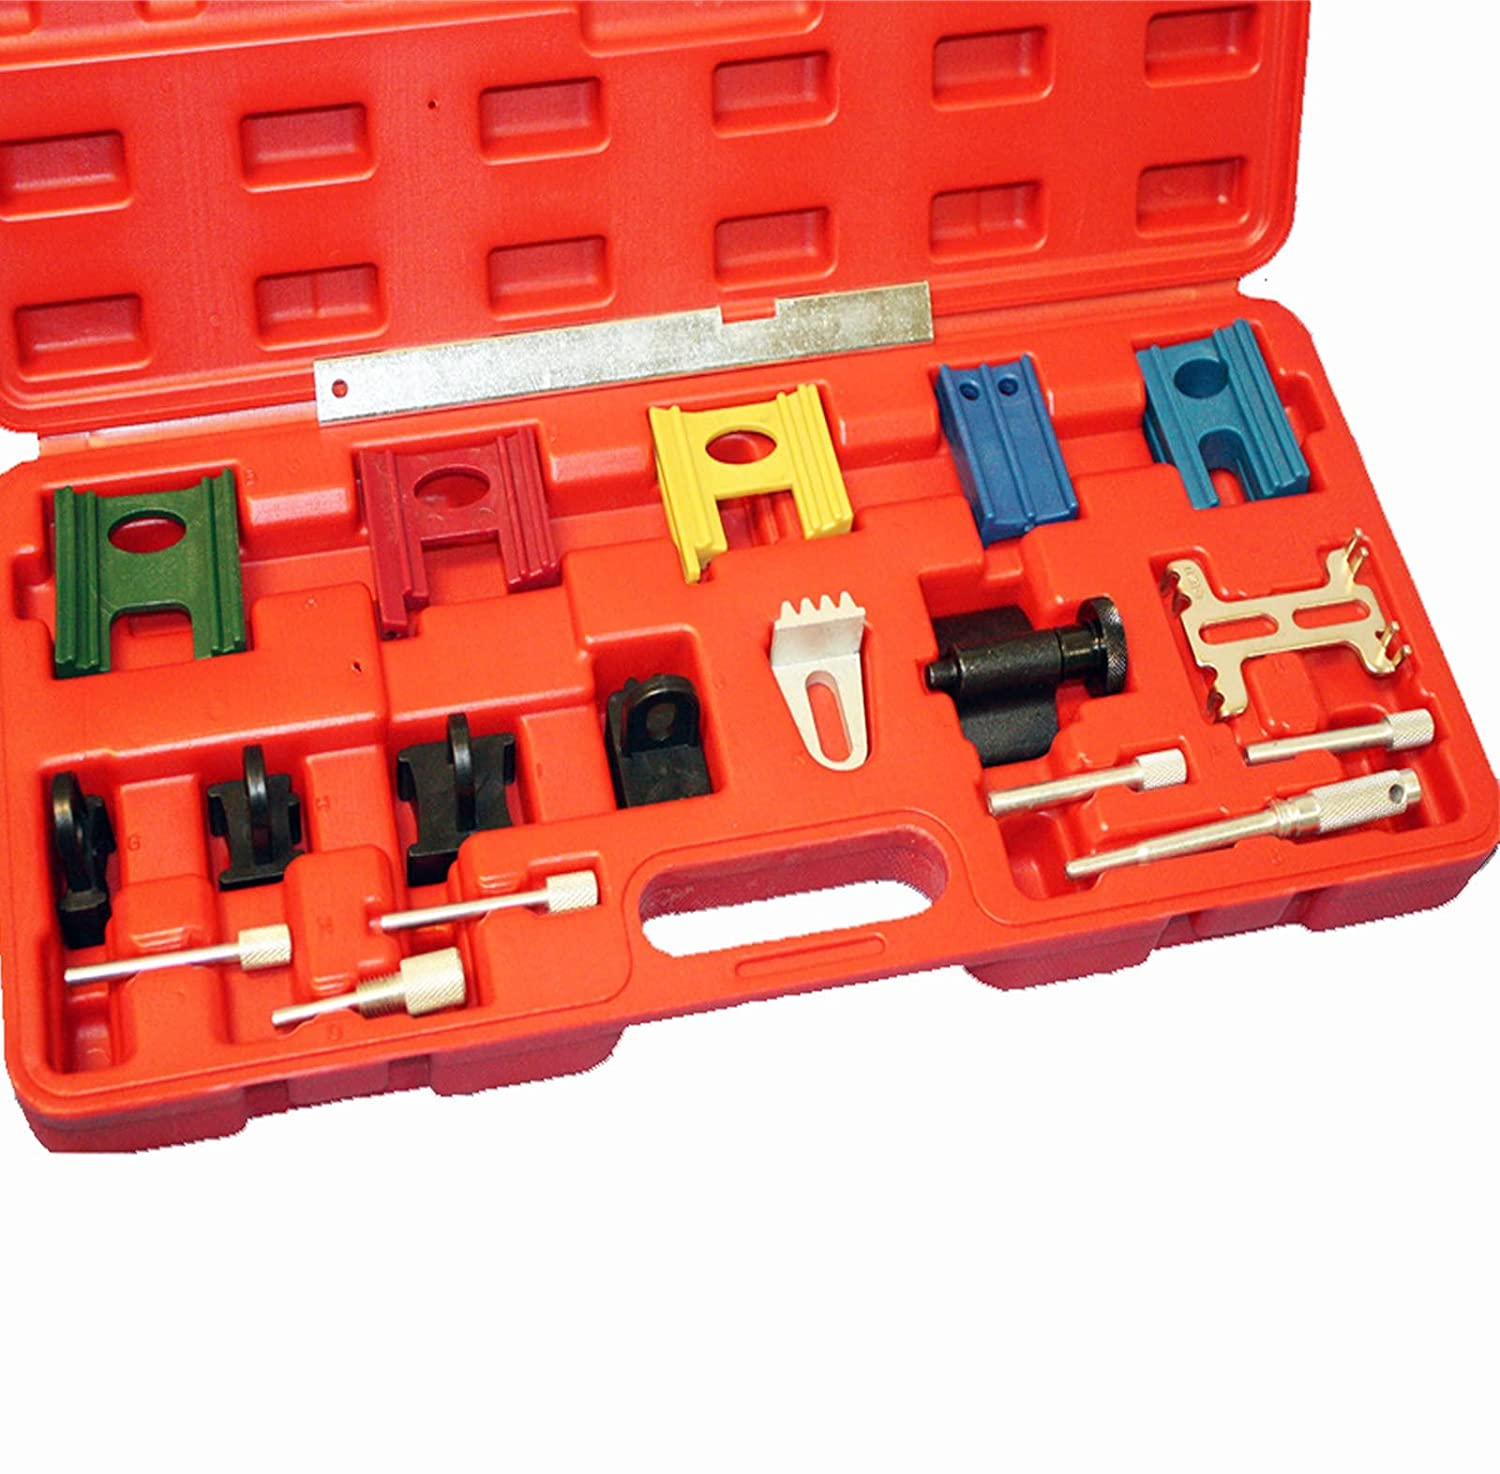 Amazon.com: Car Accessories Twin Timing Cam 19PC Petrol Engine Lock Setting & Flywheel Holding Tool Kit Complete Set With Case - Skroutz: Automotive